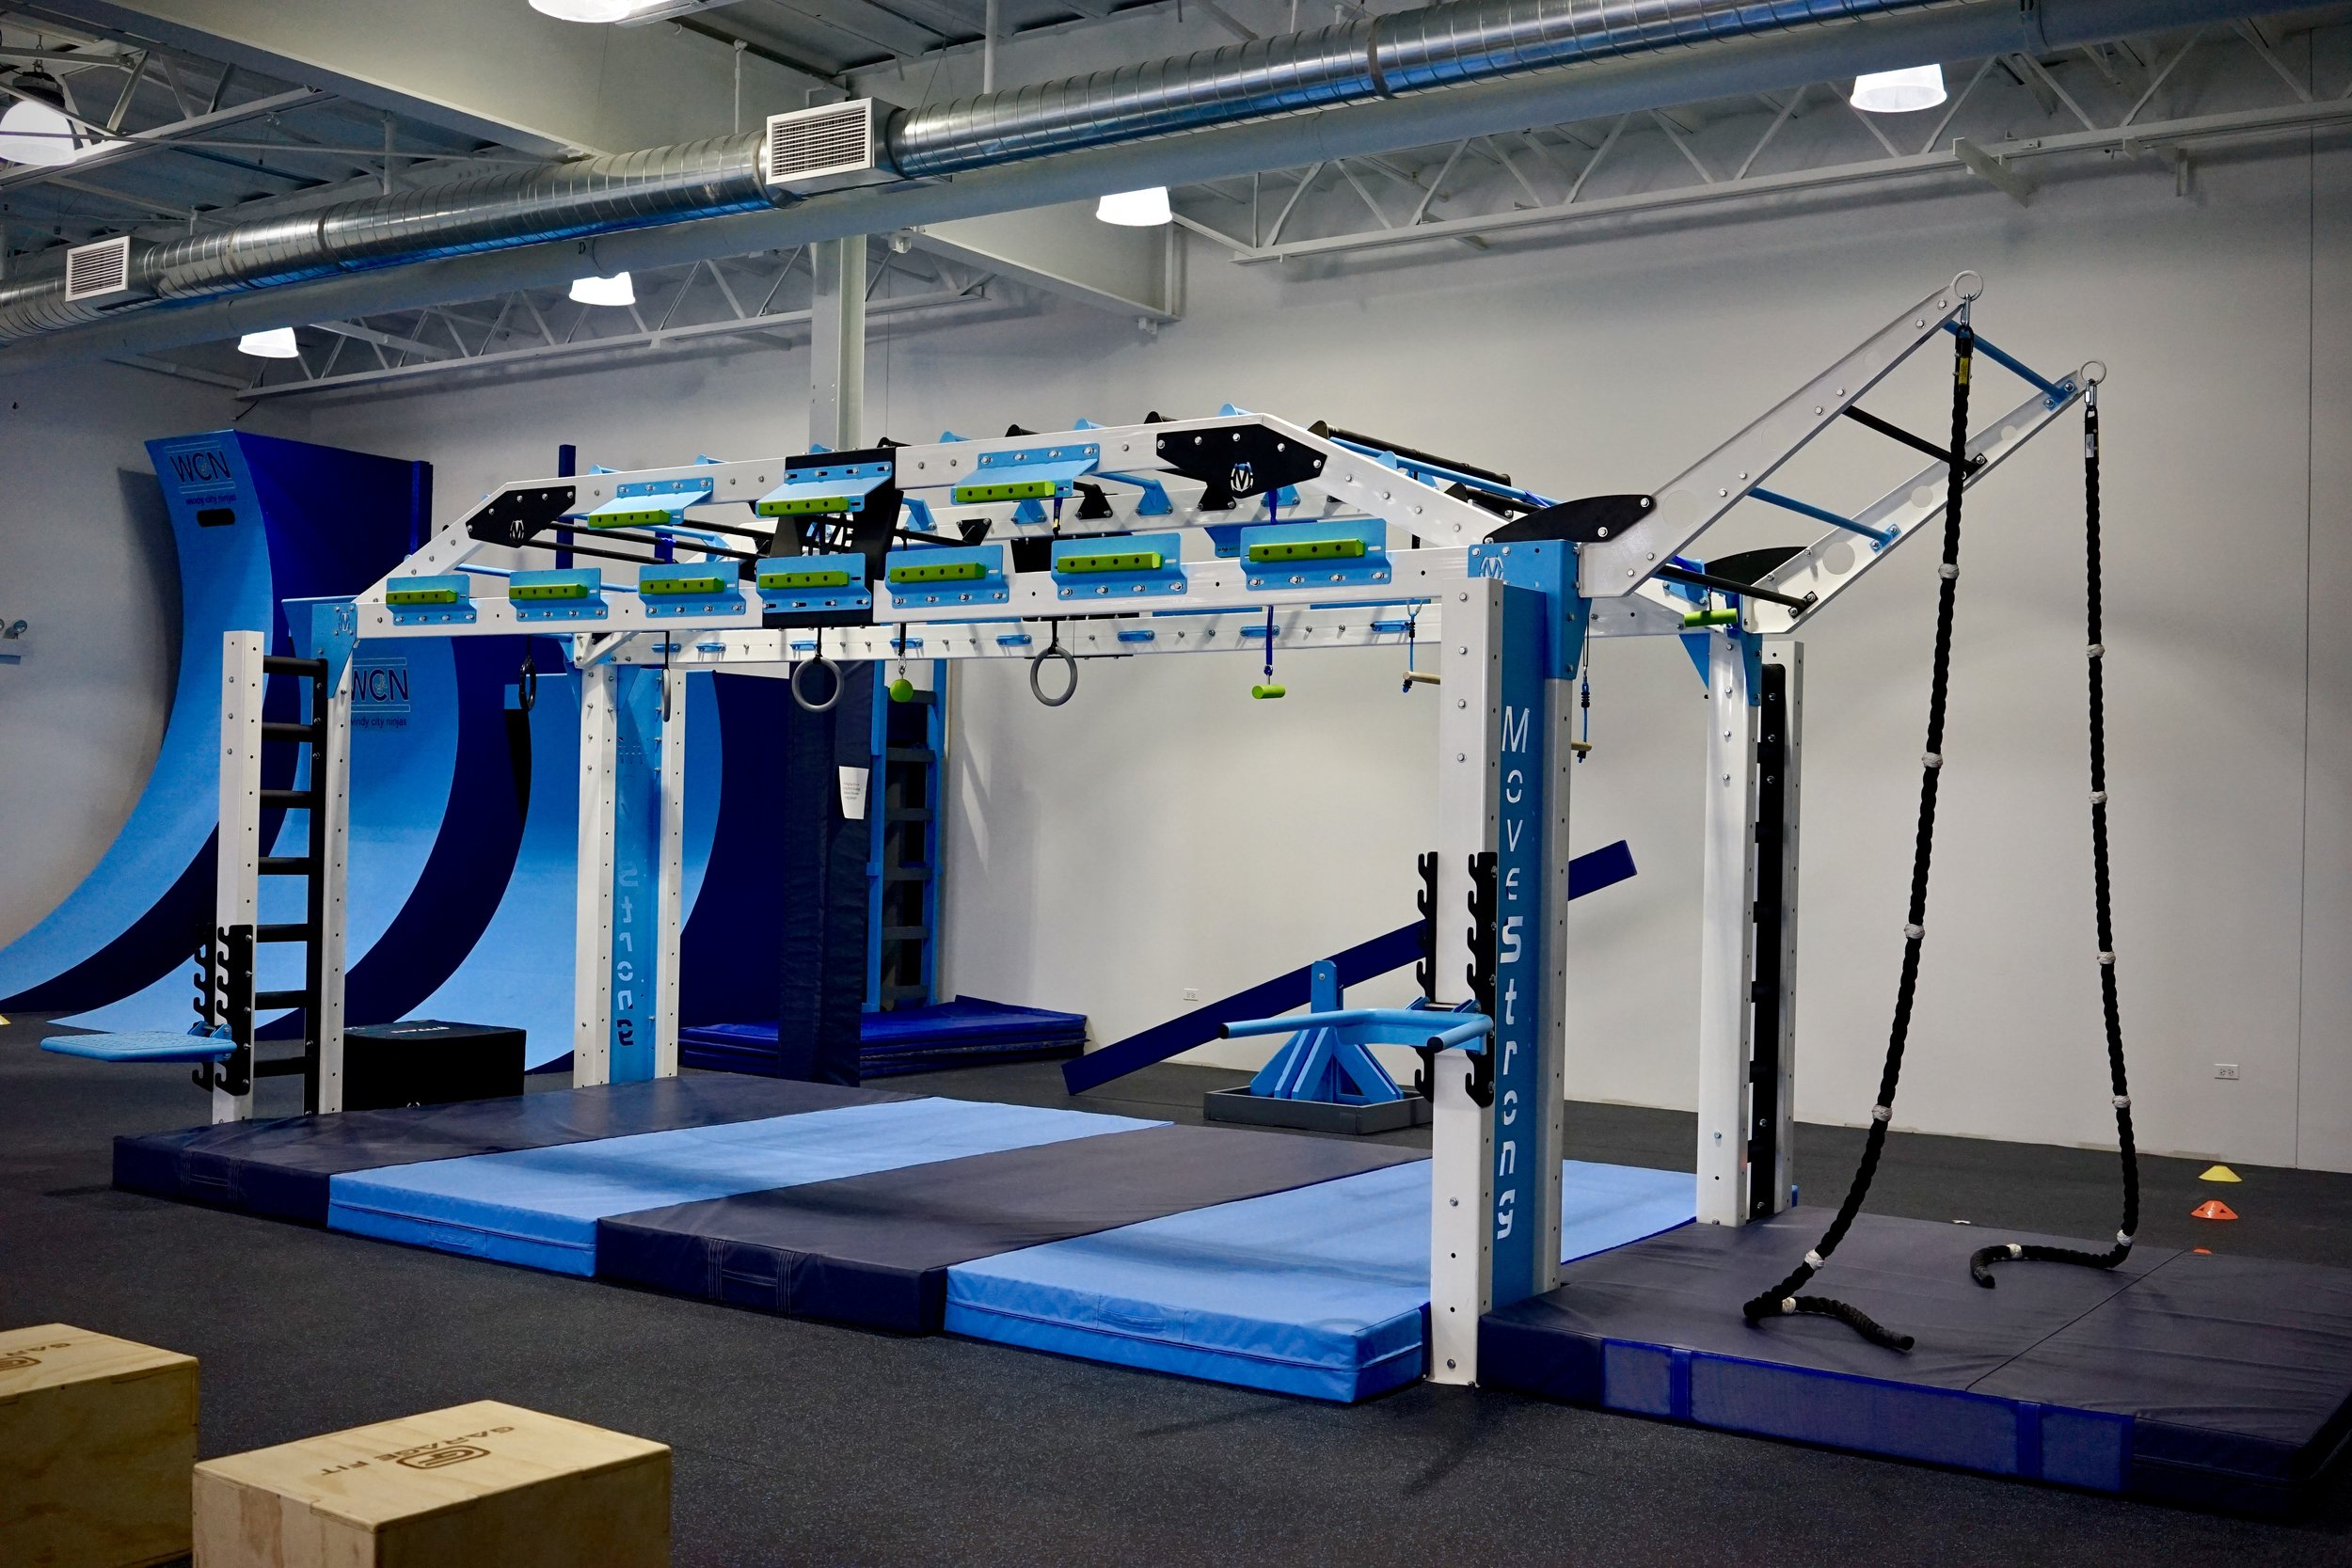 Copy of MoveStrong fitness rack for Ninja Warrior training